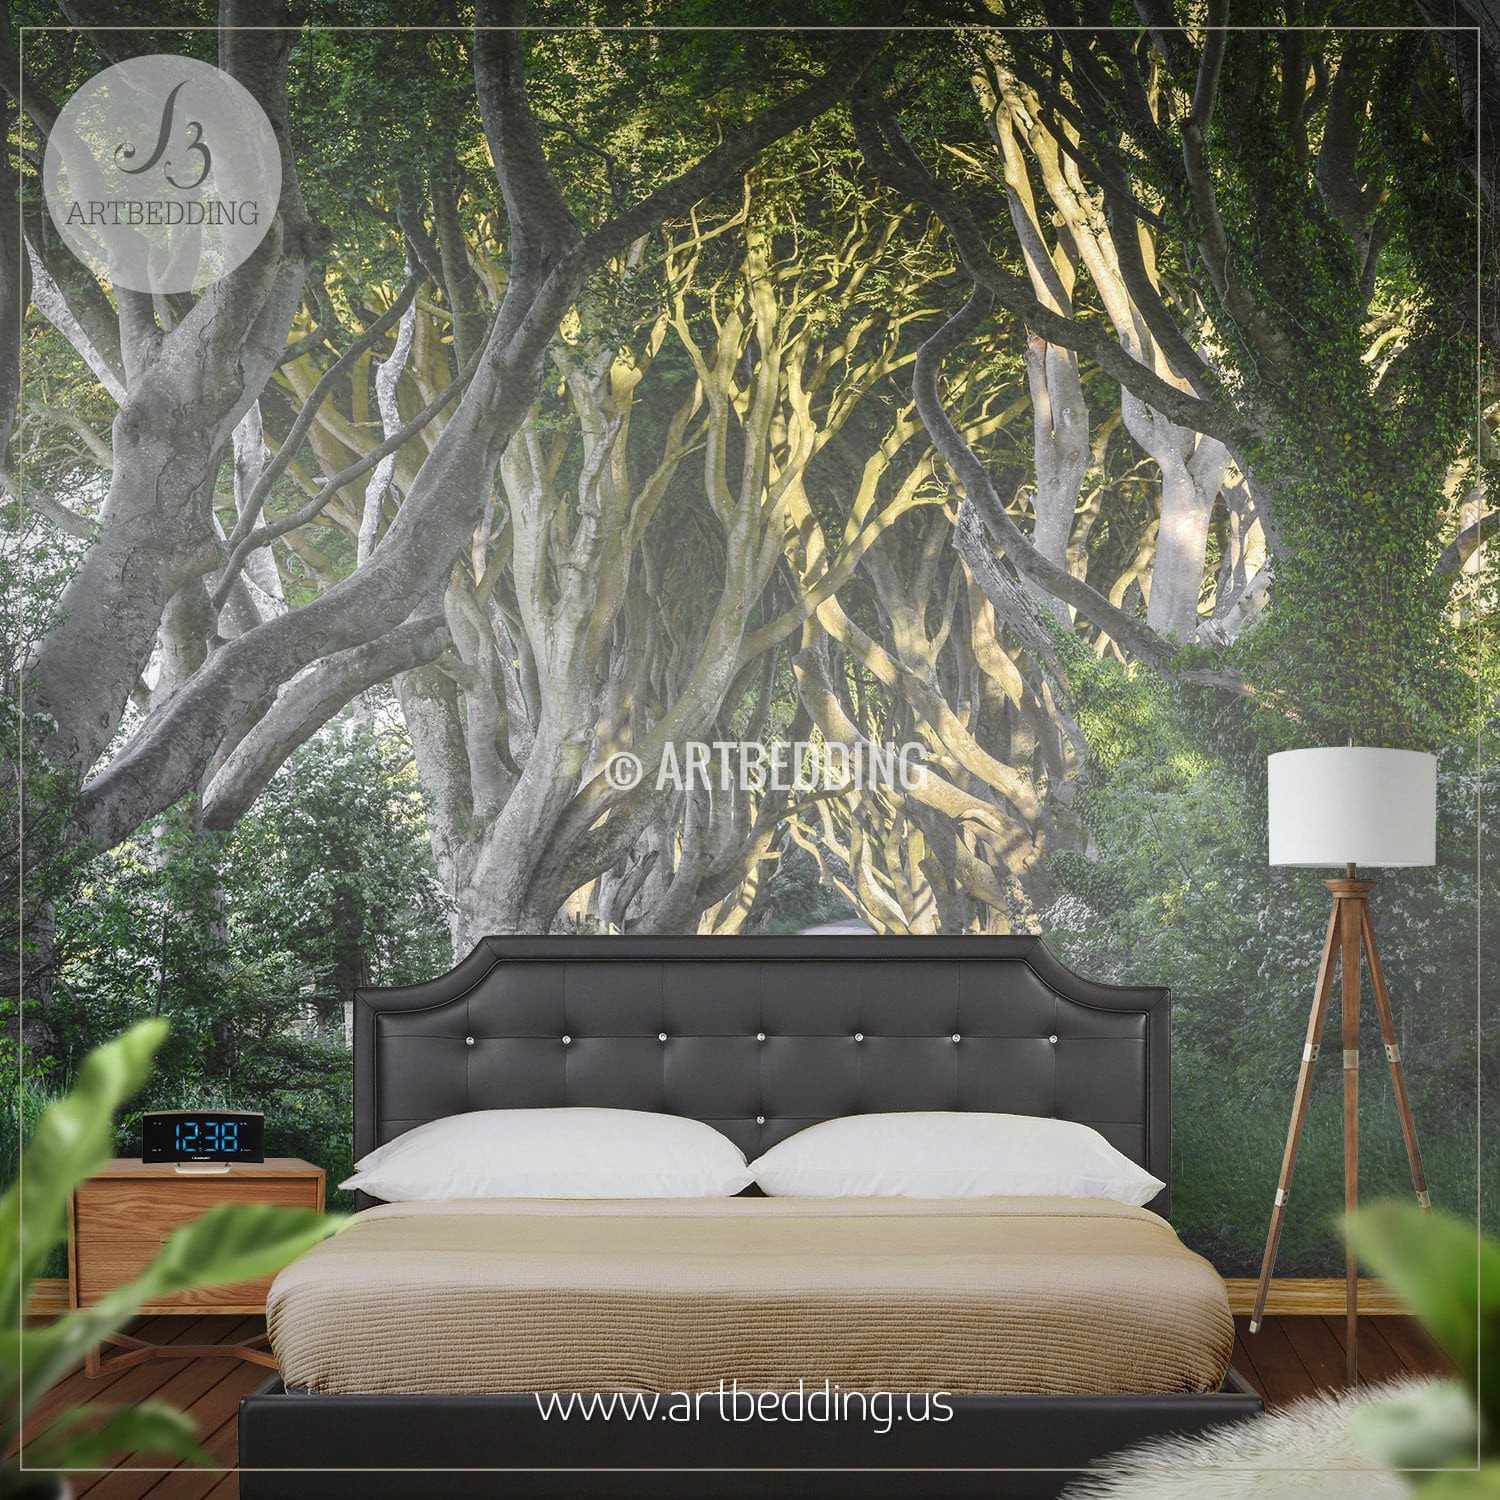 Route Forest Adhesive Mural - Artbedding